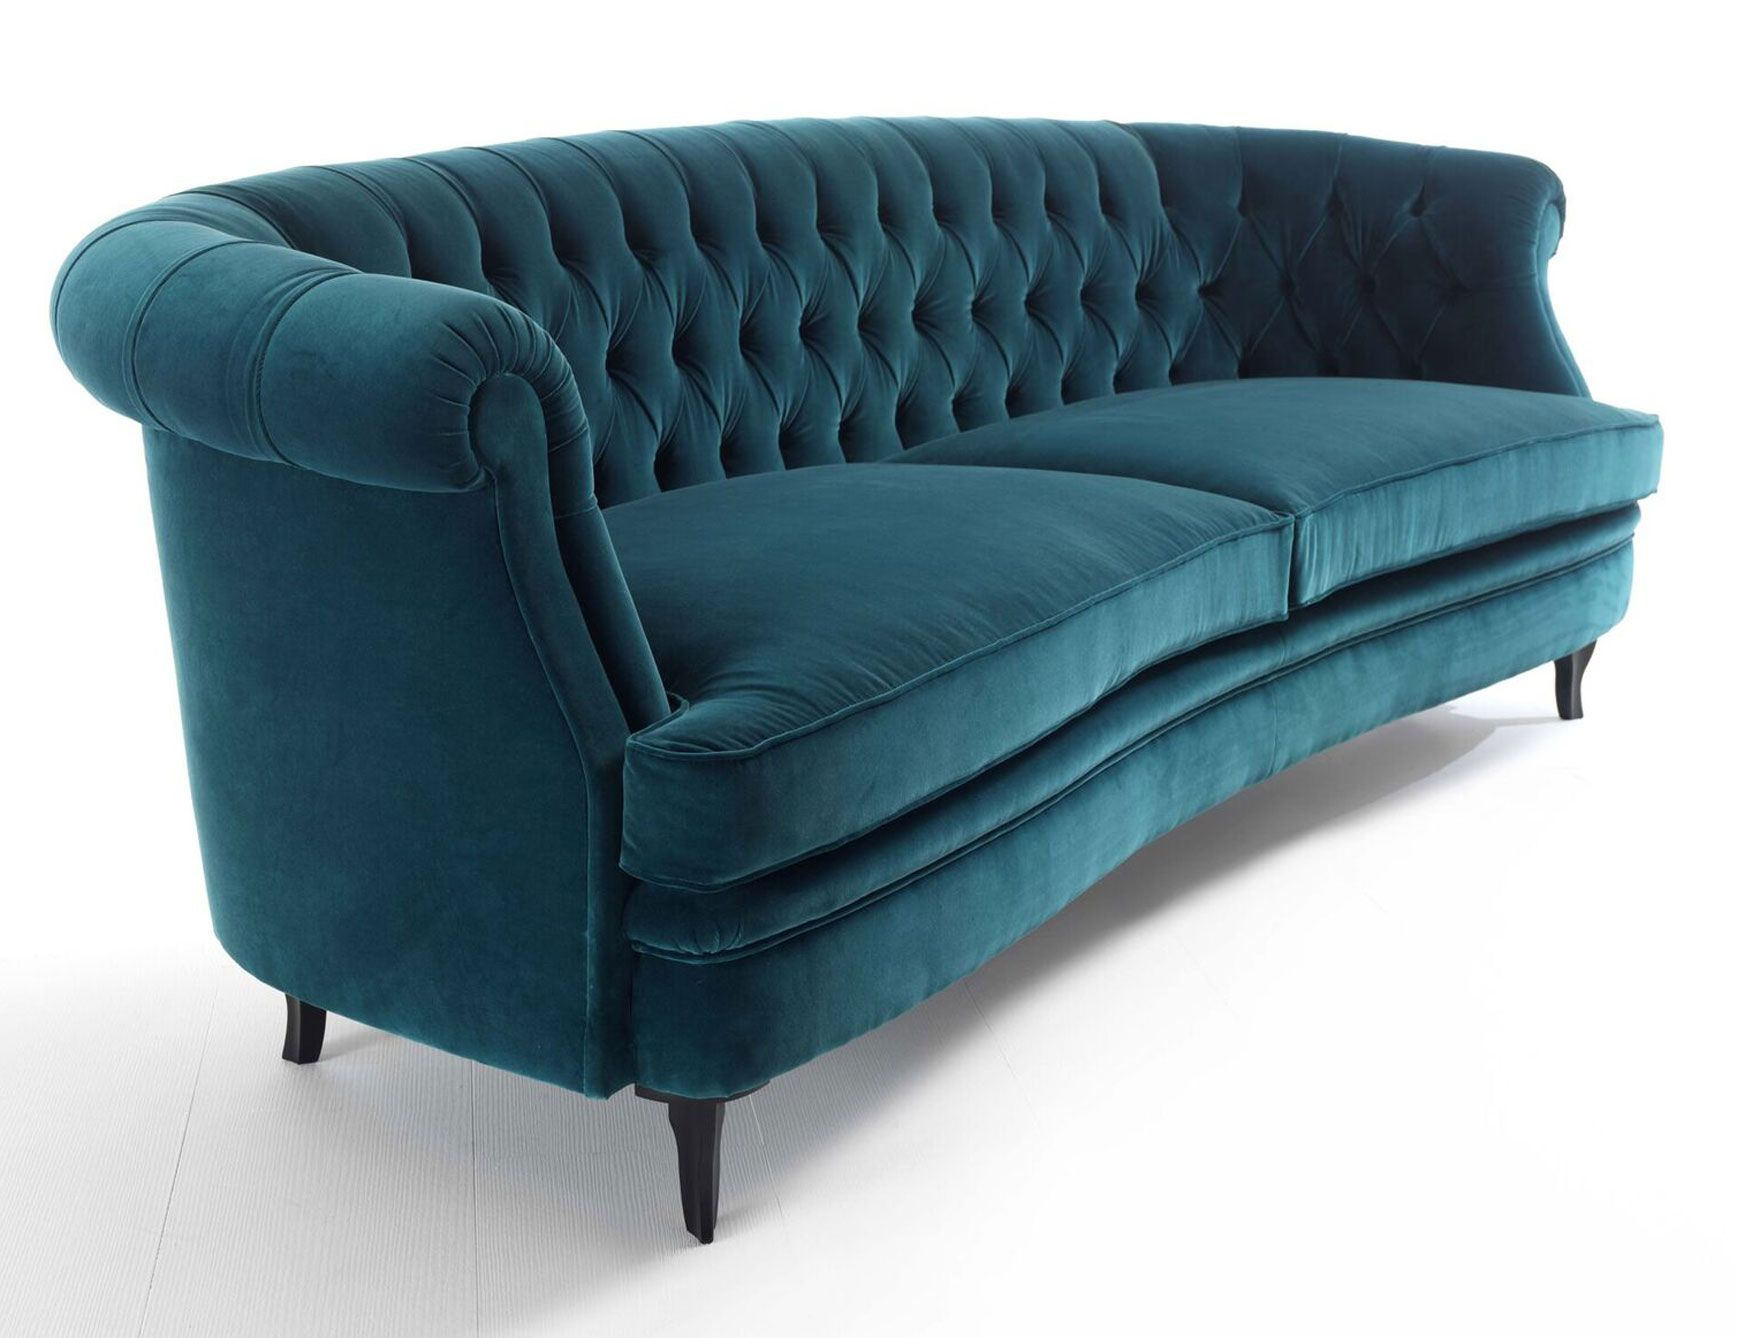 Charlotte luxury italian sofa upholstered in fabric this luxury modern furniture collection combines timeless designs with sophisticated glamour